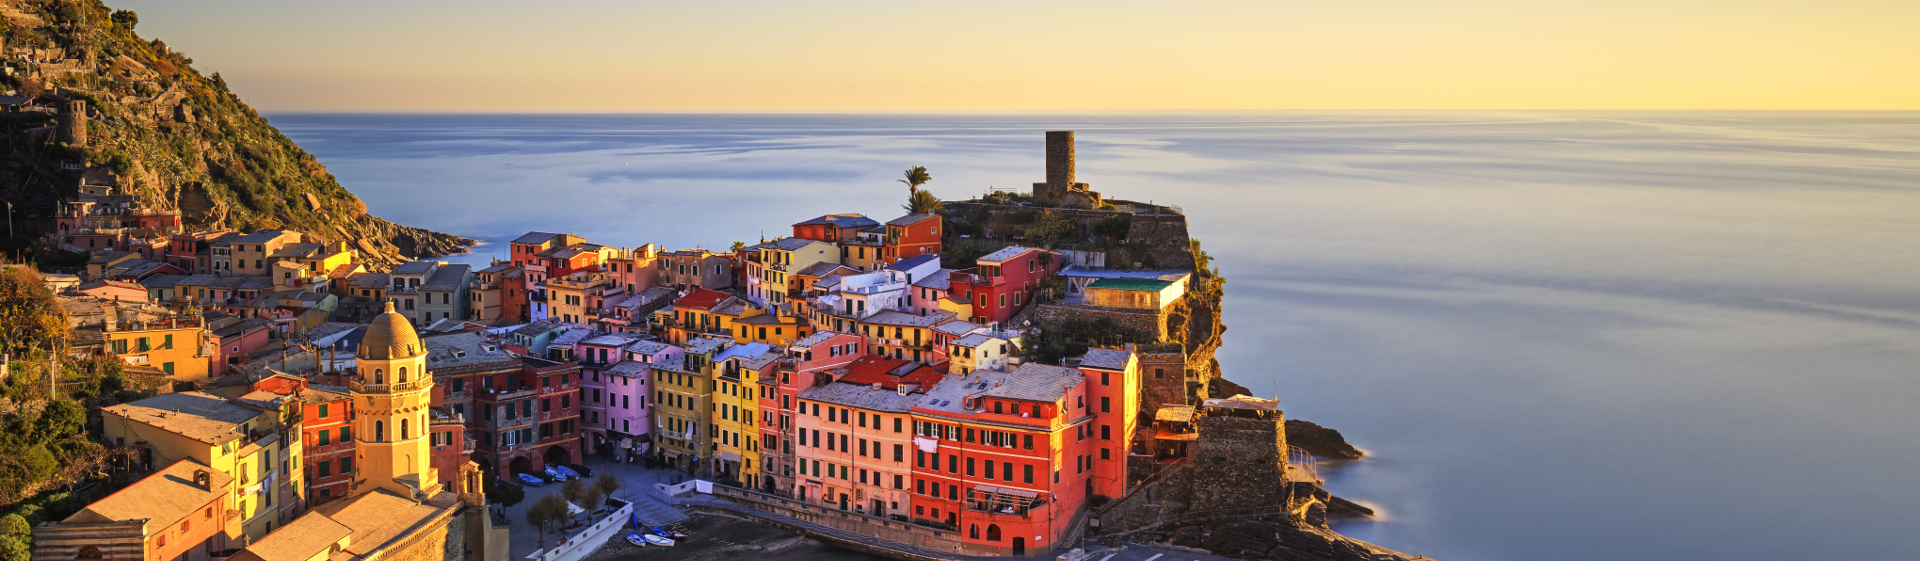 Slider3 – Vernazza